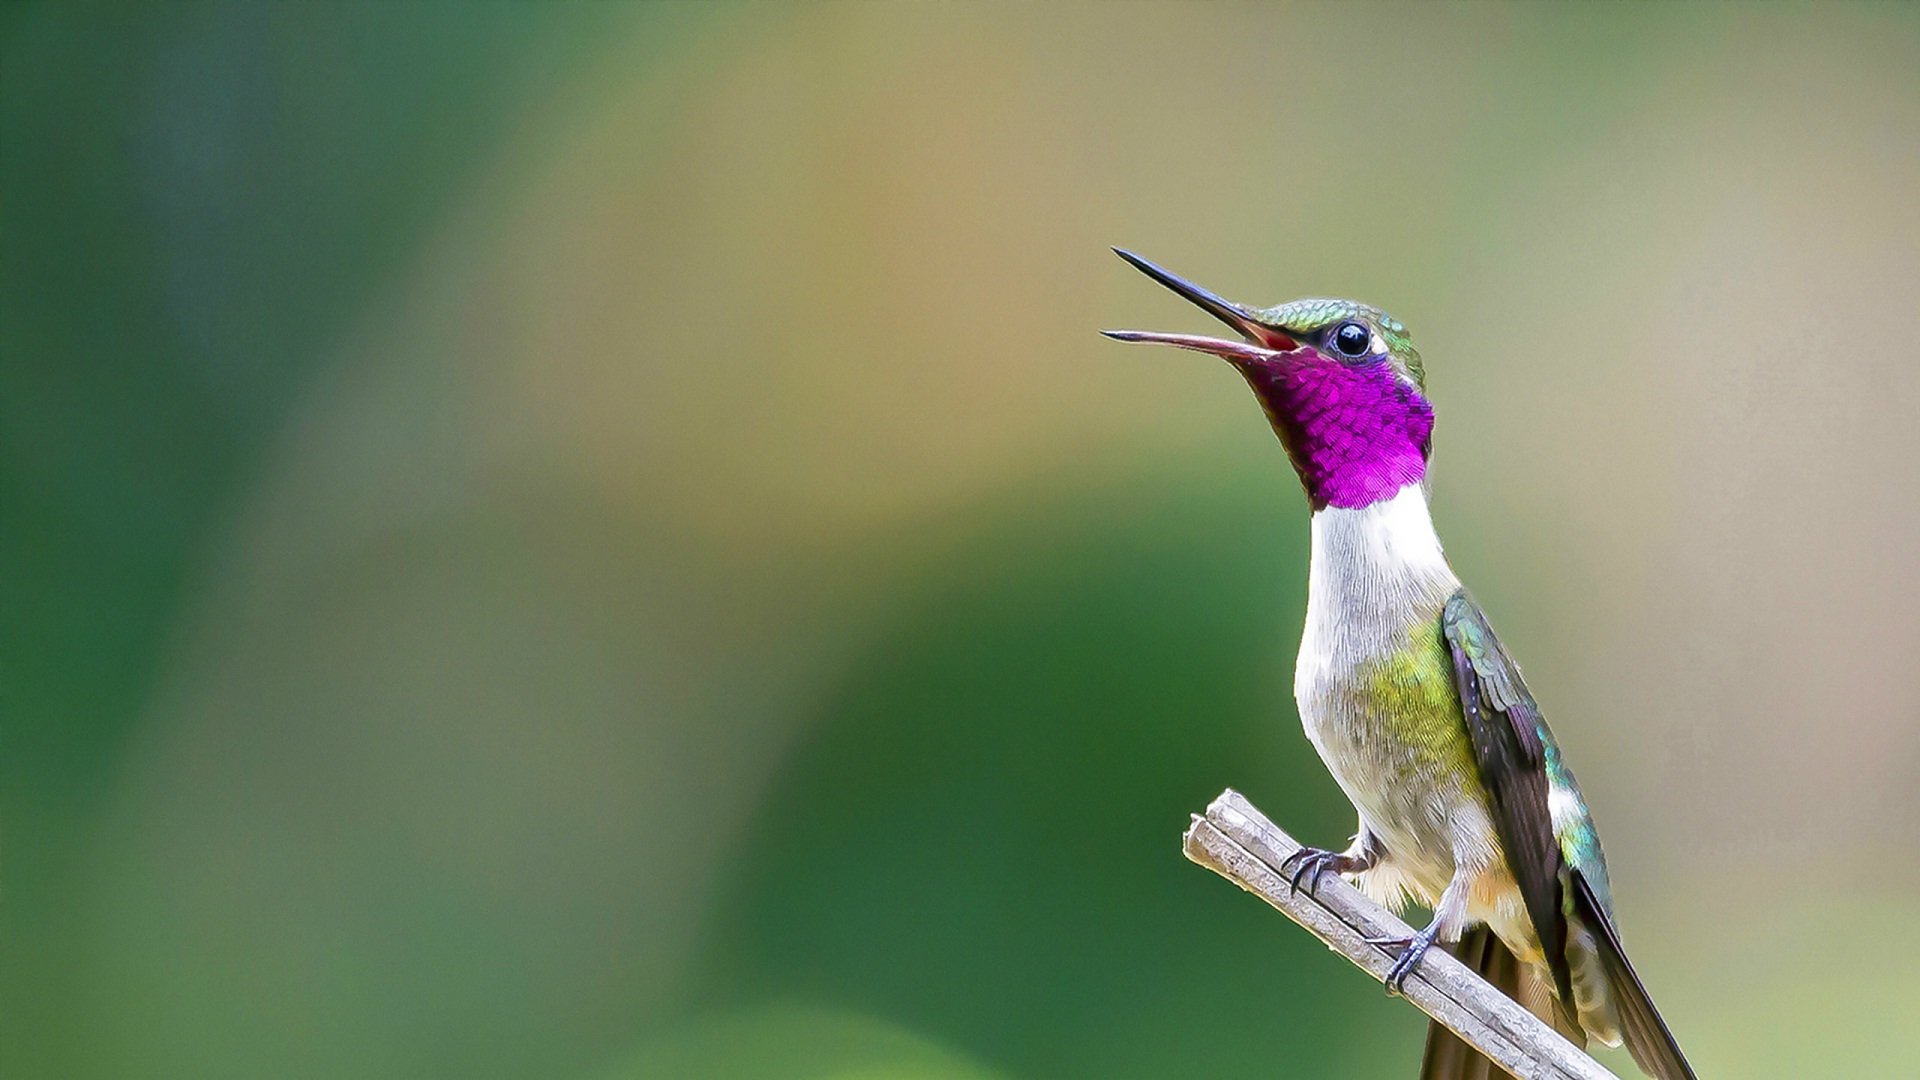 Purple neck and long beach small bird wallpaper | HD Wallpapers Rocks